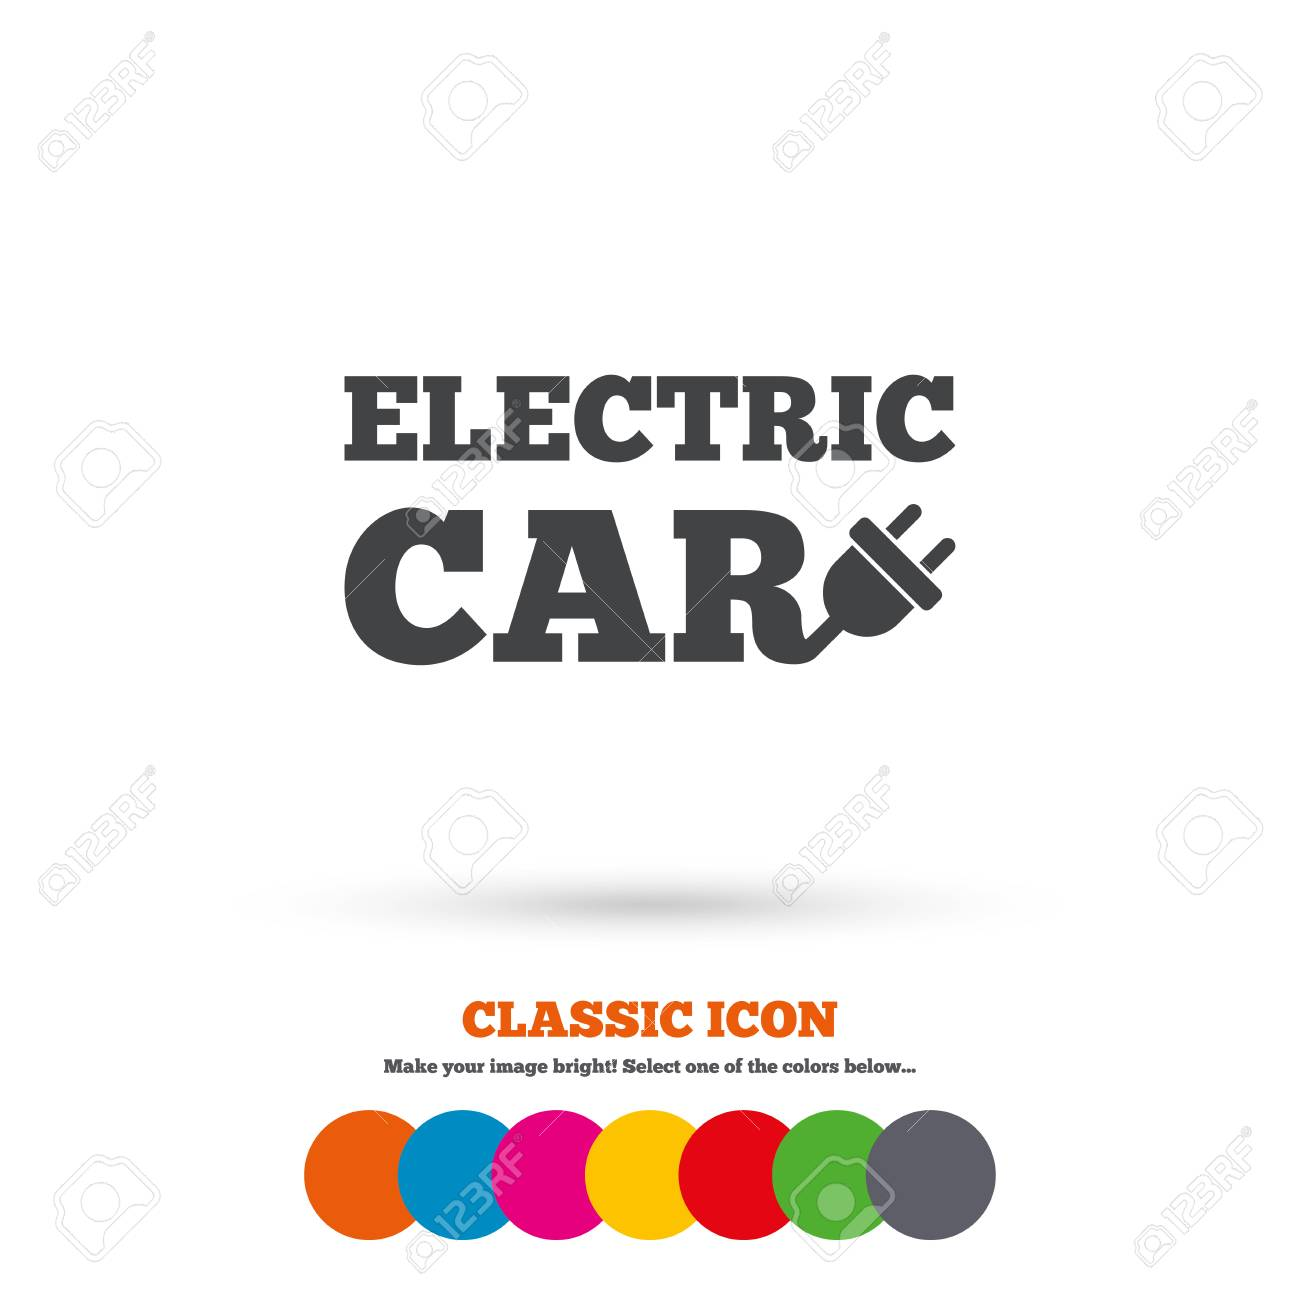 hight resolution of electric car sign icon electric vehicle transport symbol classic flat icon colored circles